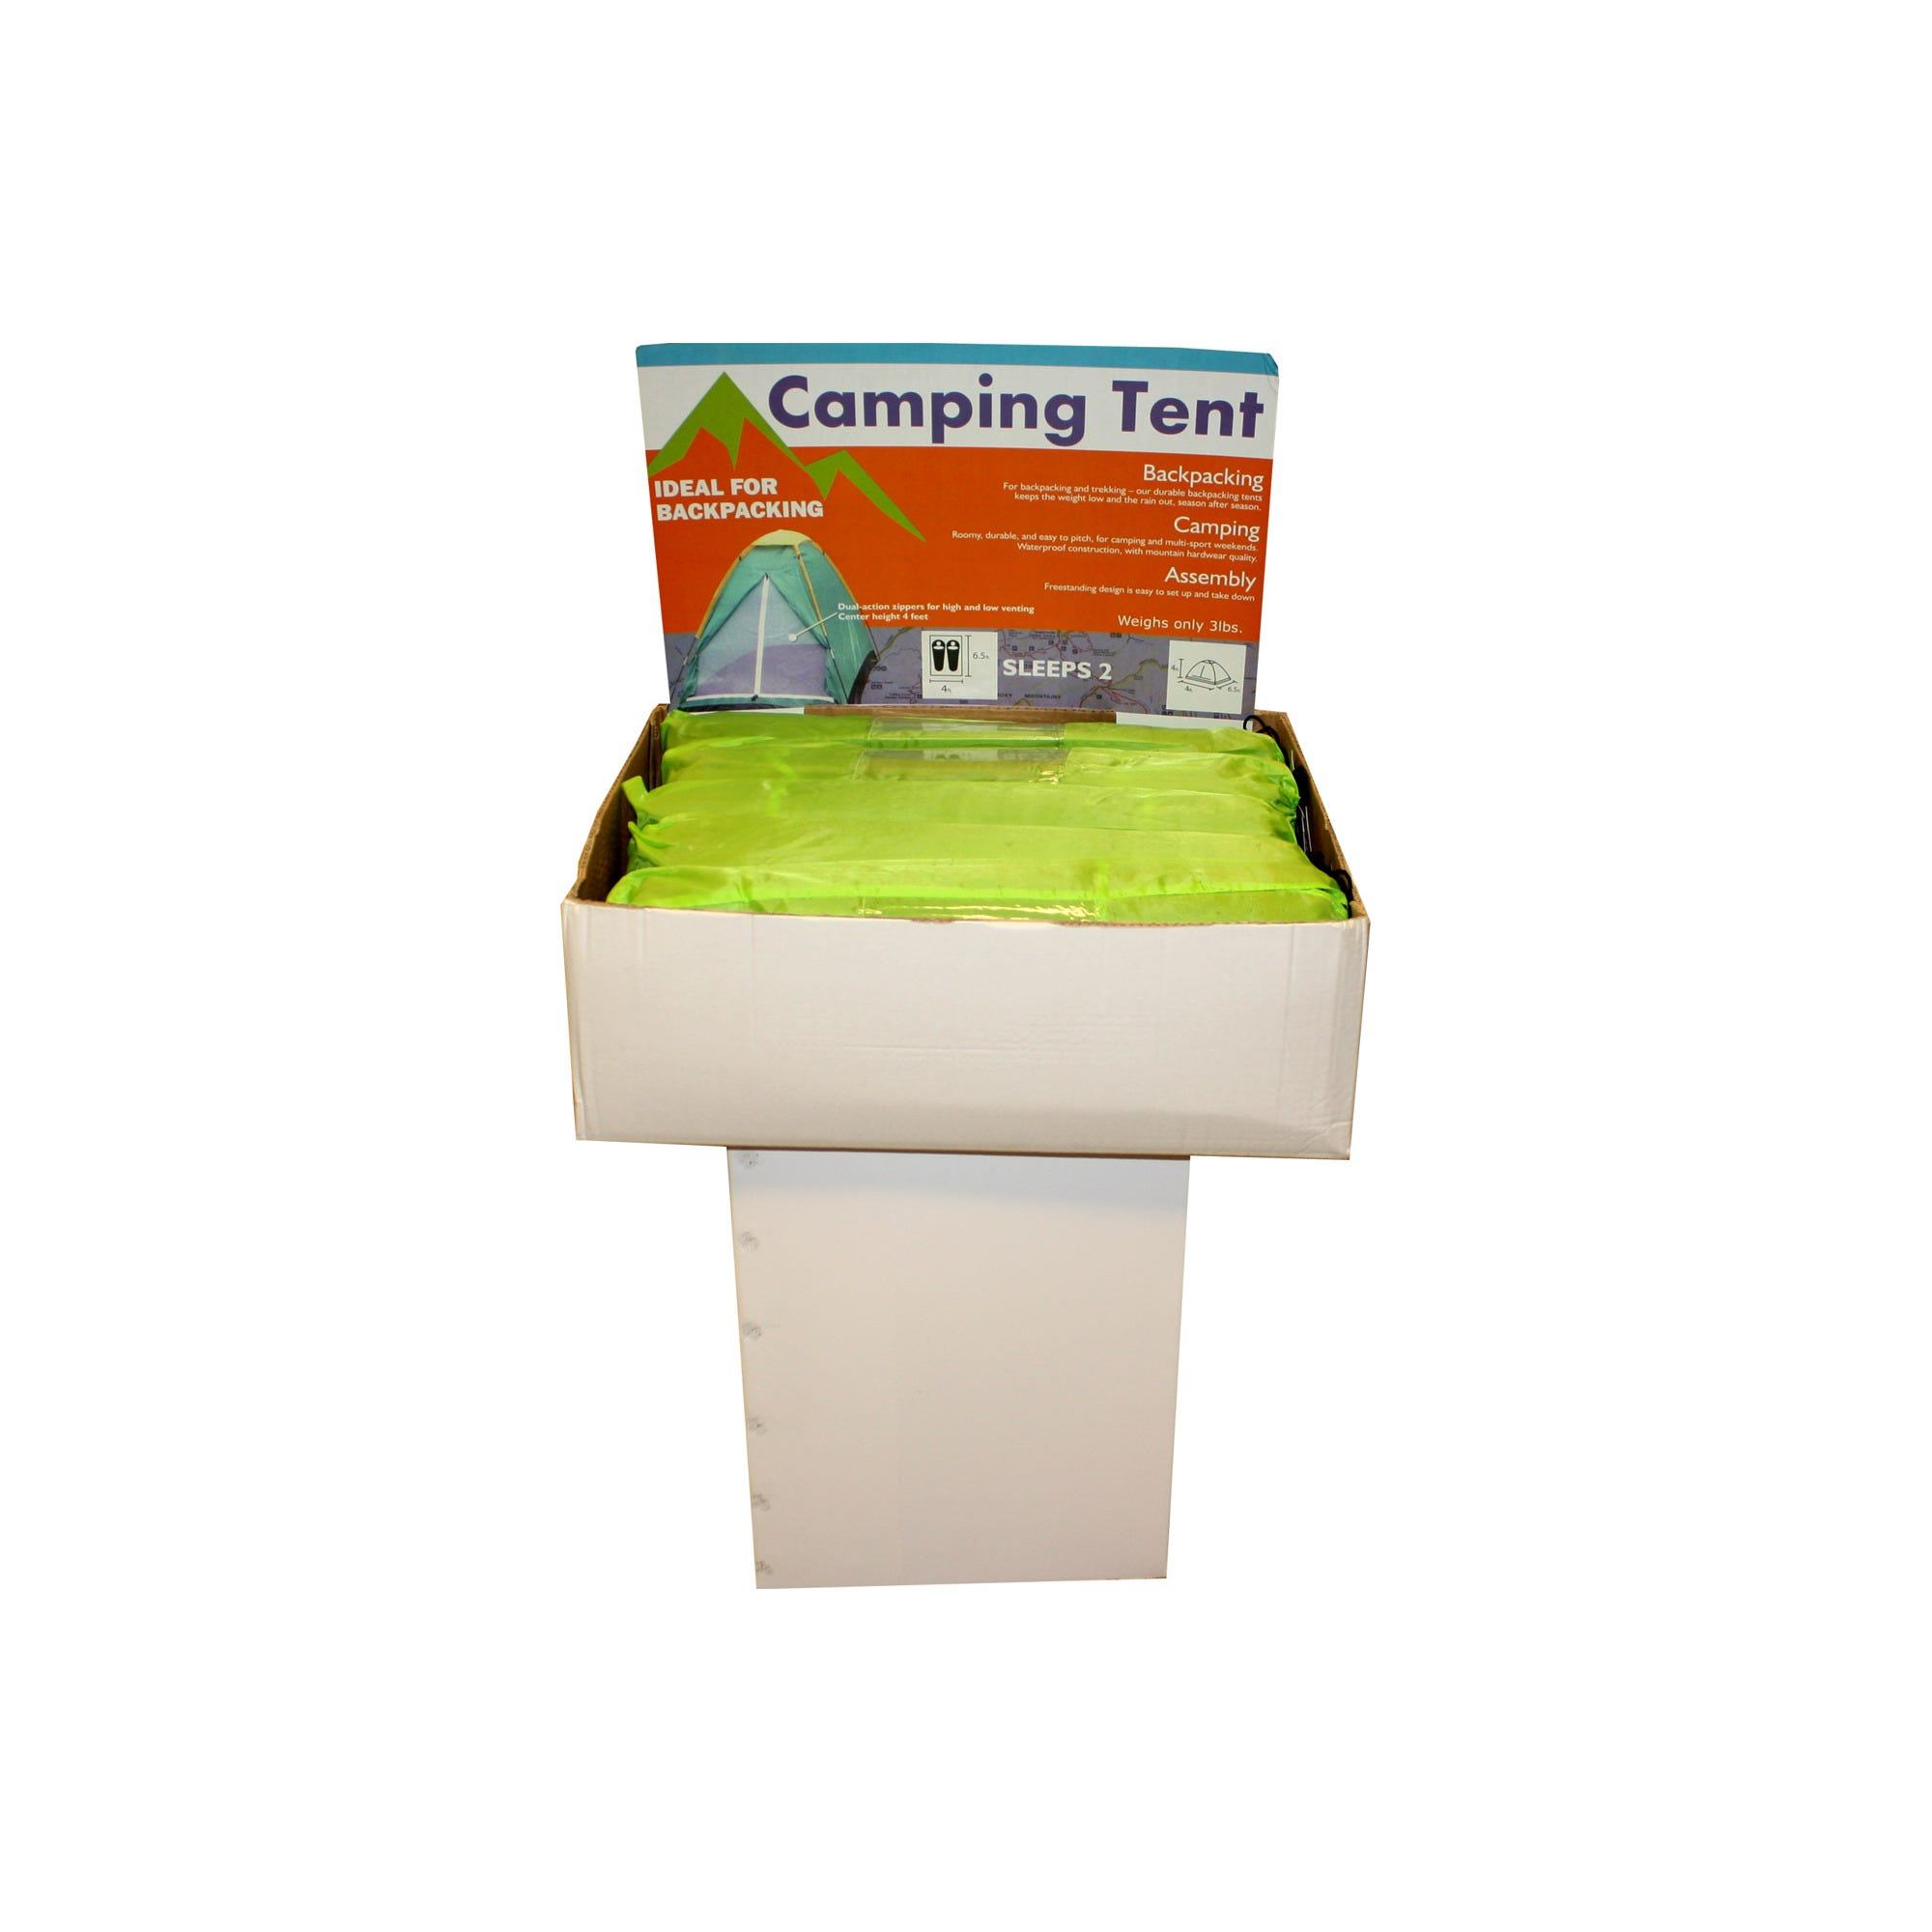 BACKPACKing-tent-display